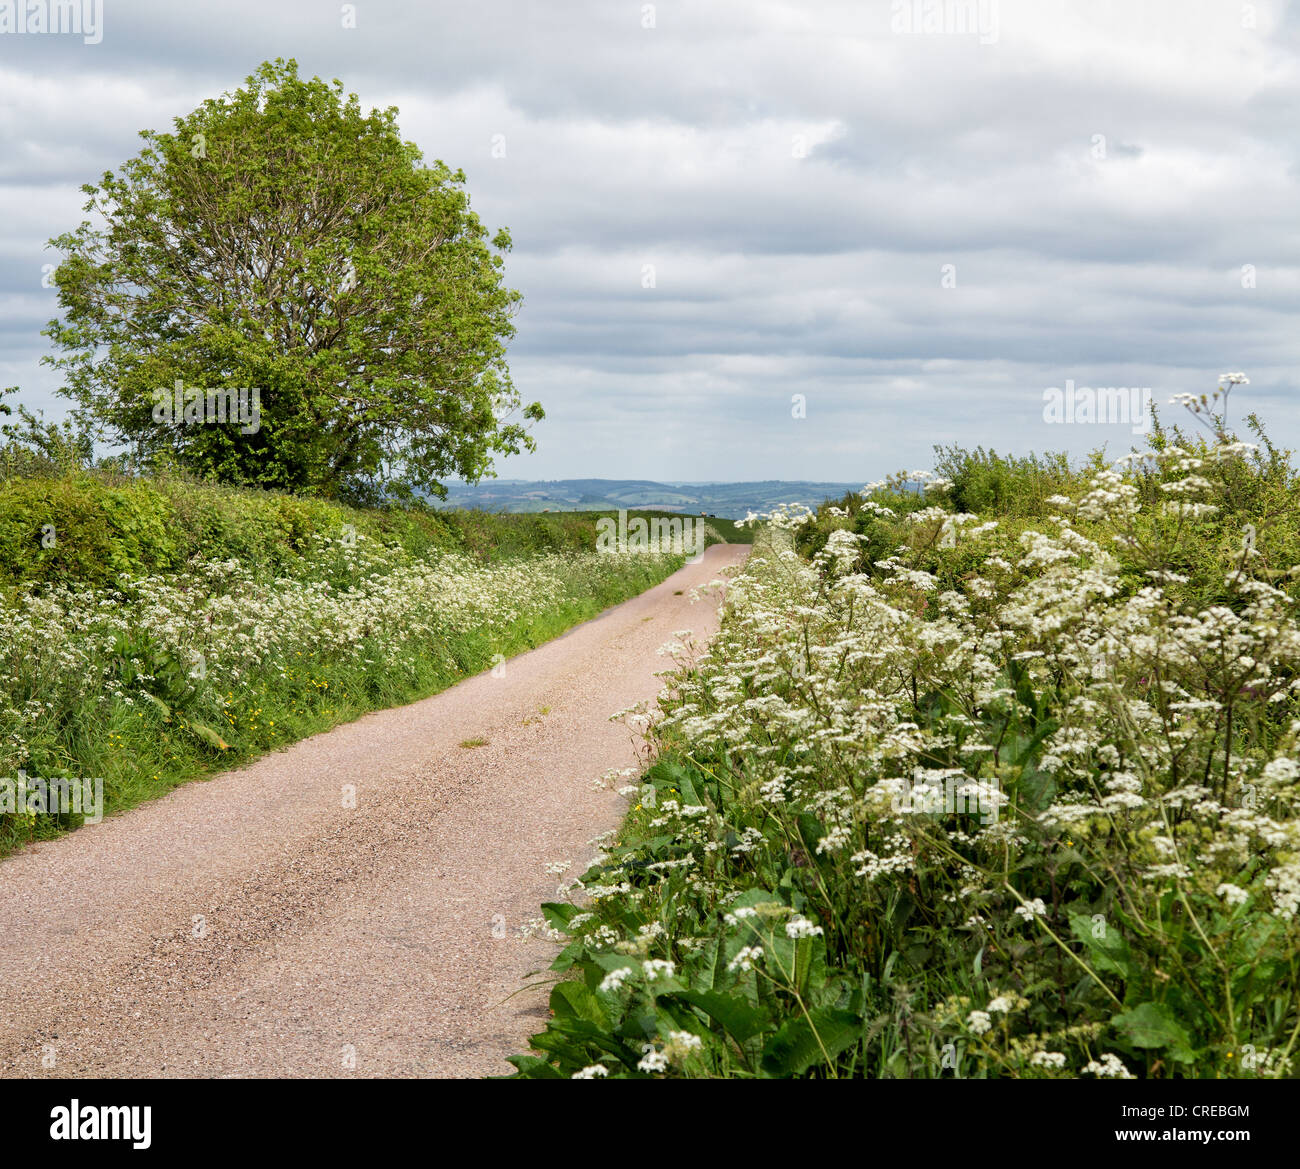 North Devon countryside showing hedgerows and country road at Alverdiscott, Devon, England - Stock Image